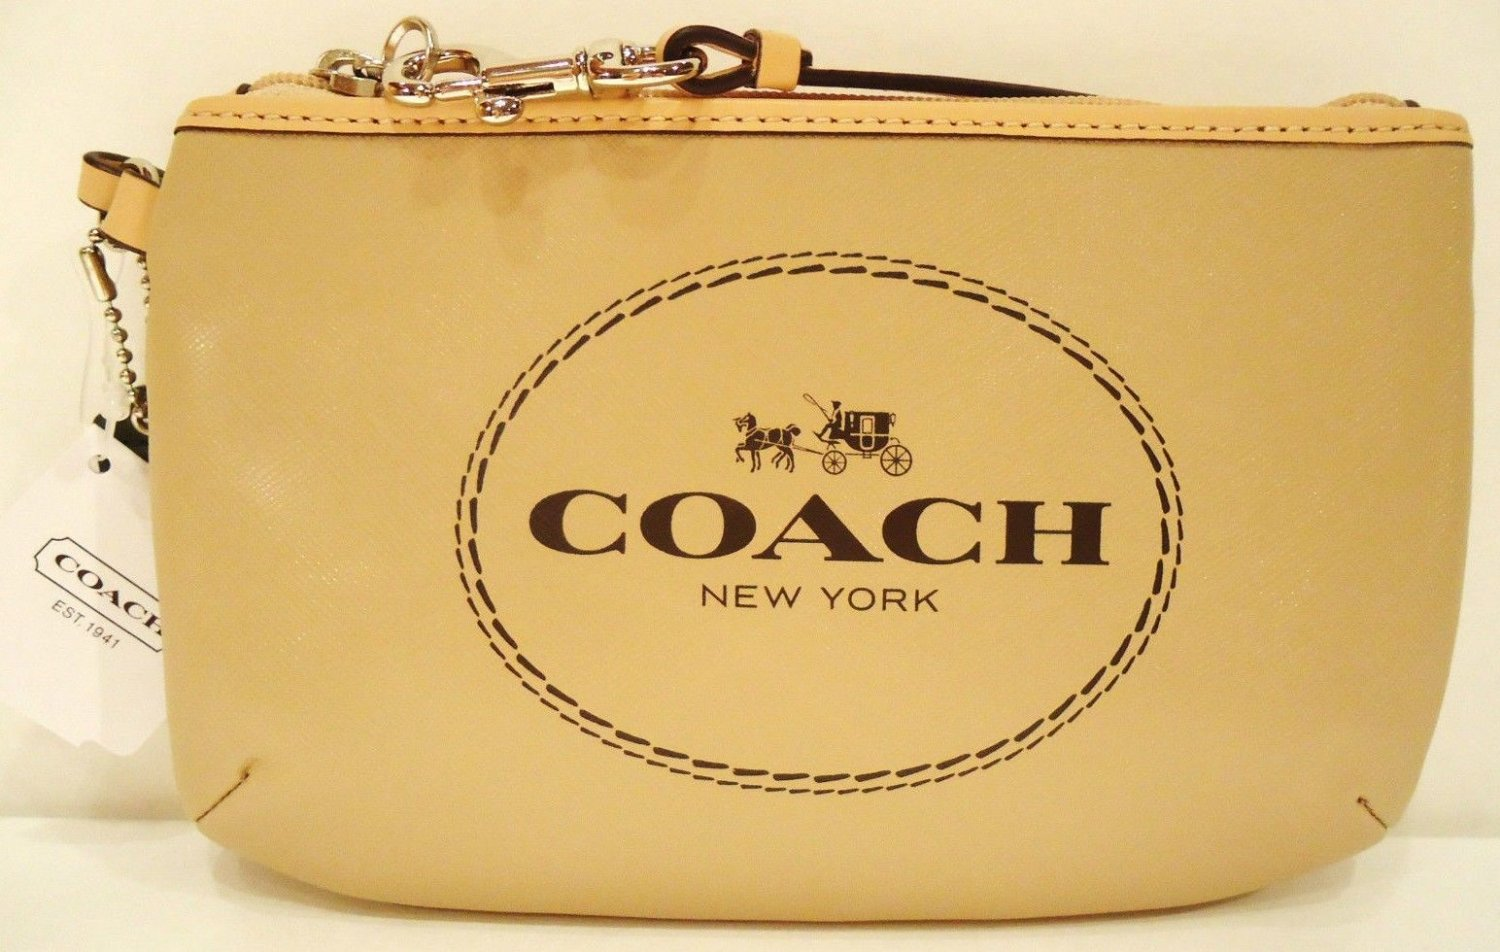 COACH - HORSE - CARRIAGE - KHAKI - LEATHER - WRISTLET - PURSE - BRAND NEW